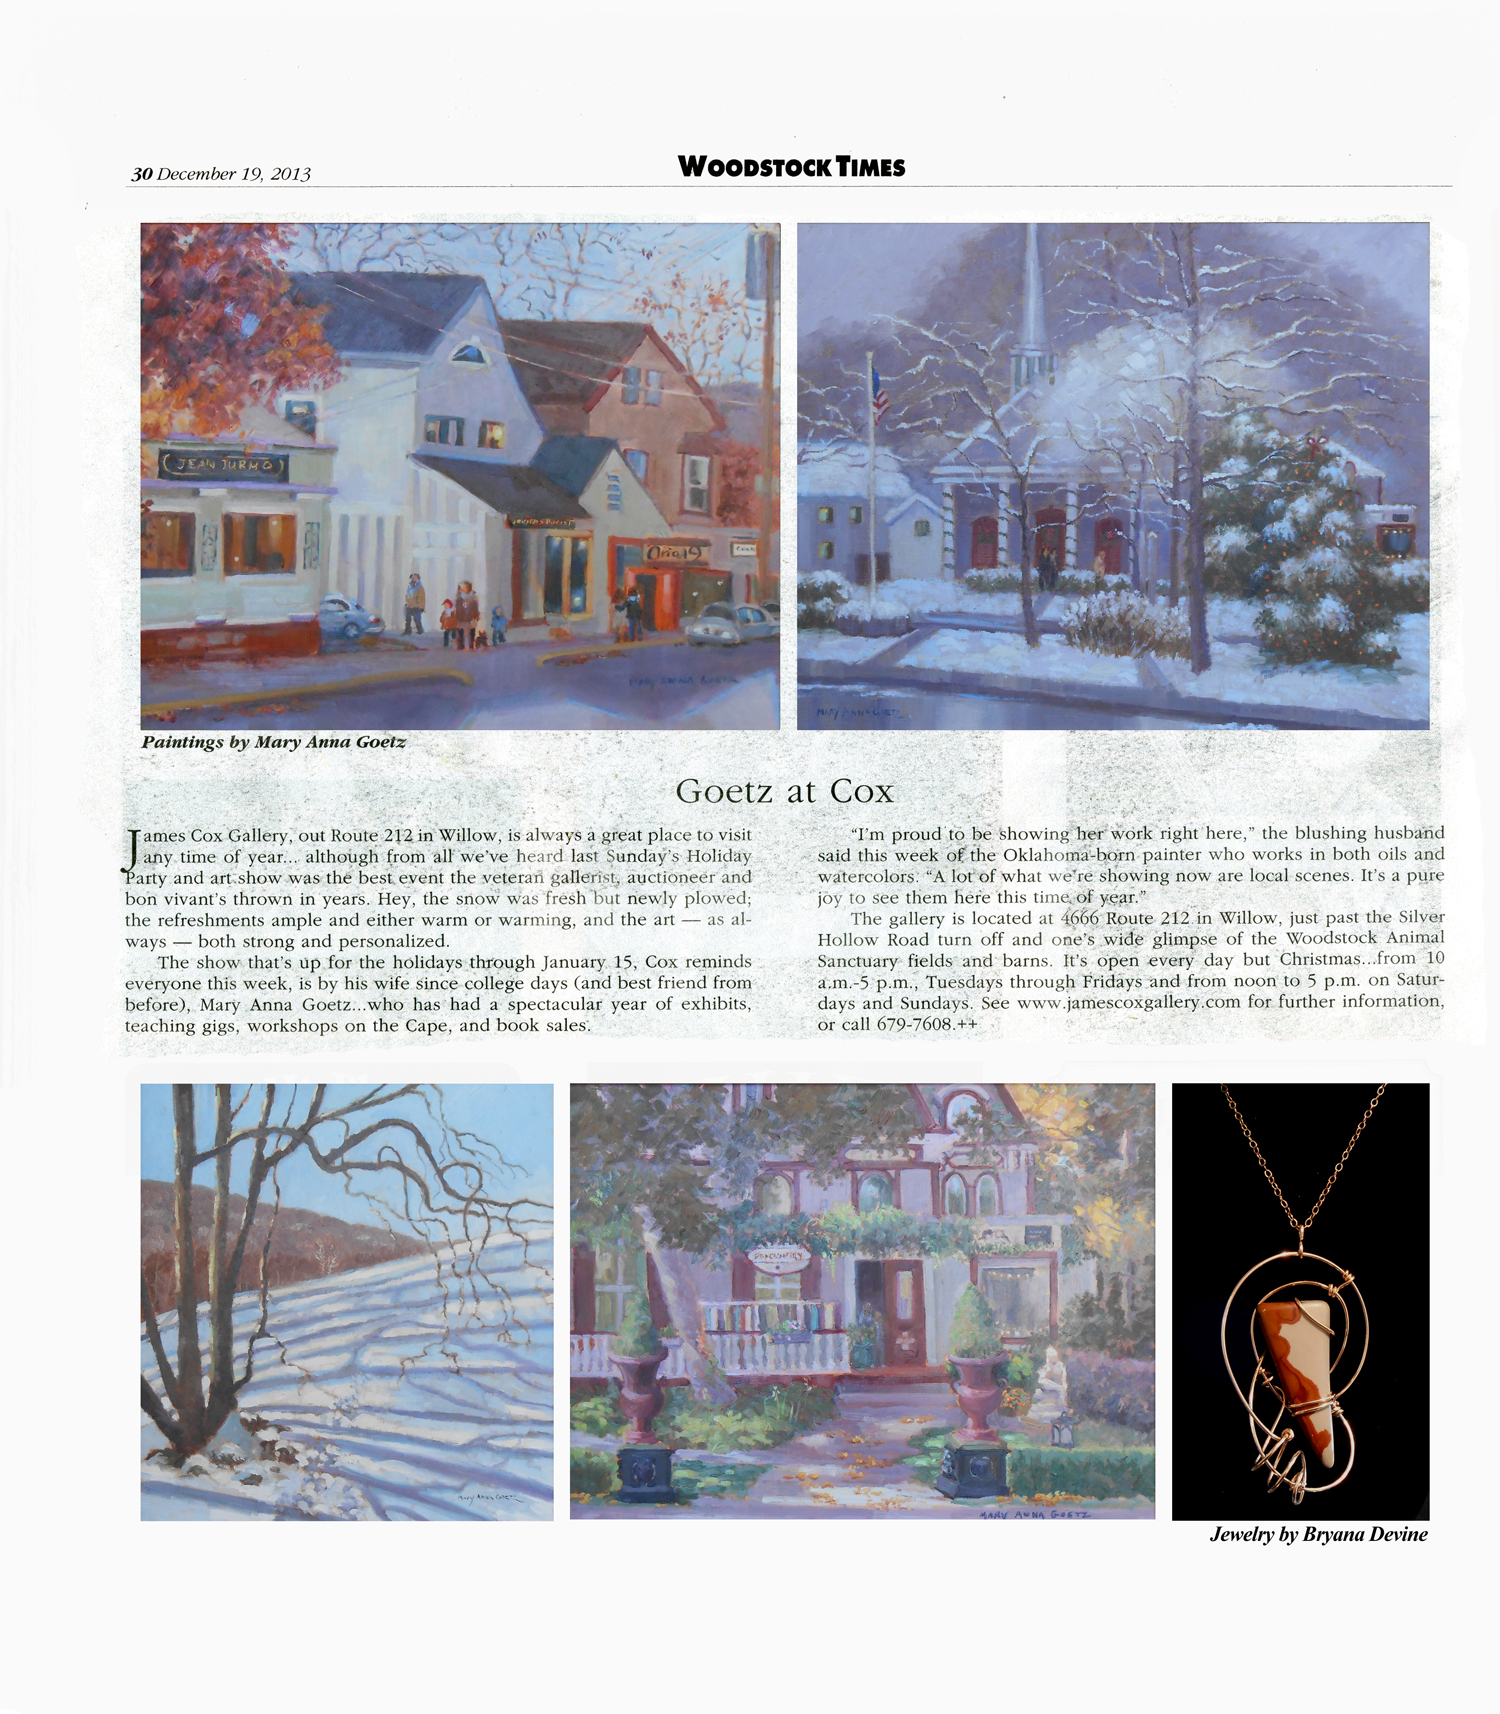 Mary Anna Goetz in Woodstock Times Dec 19 2013_small